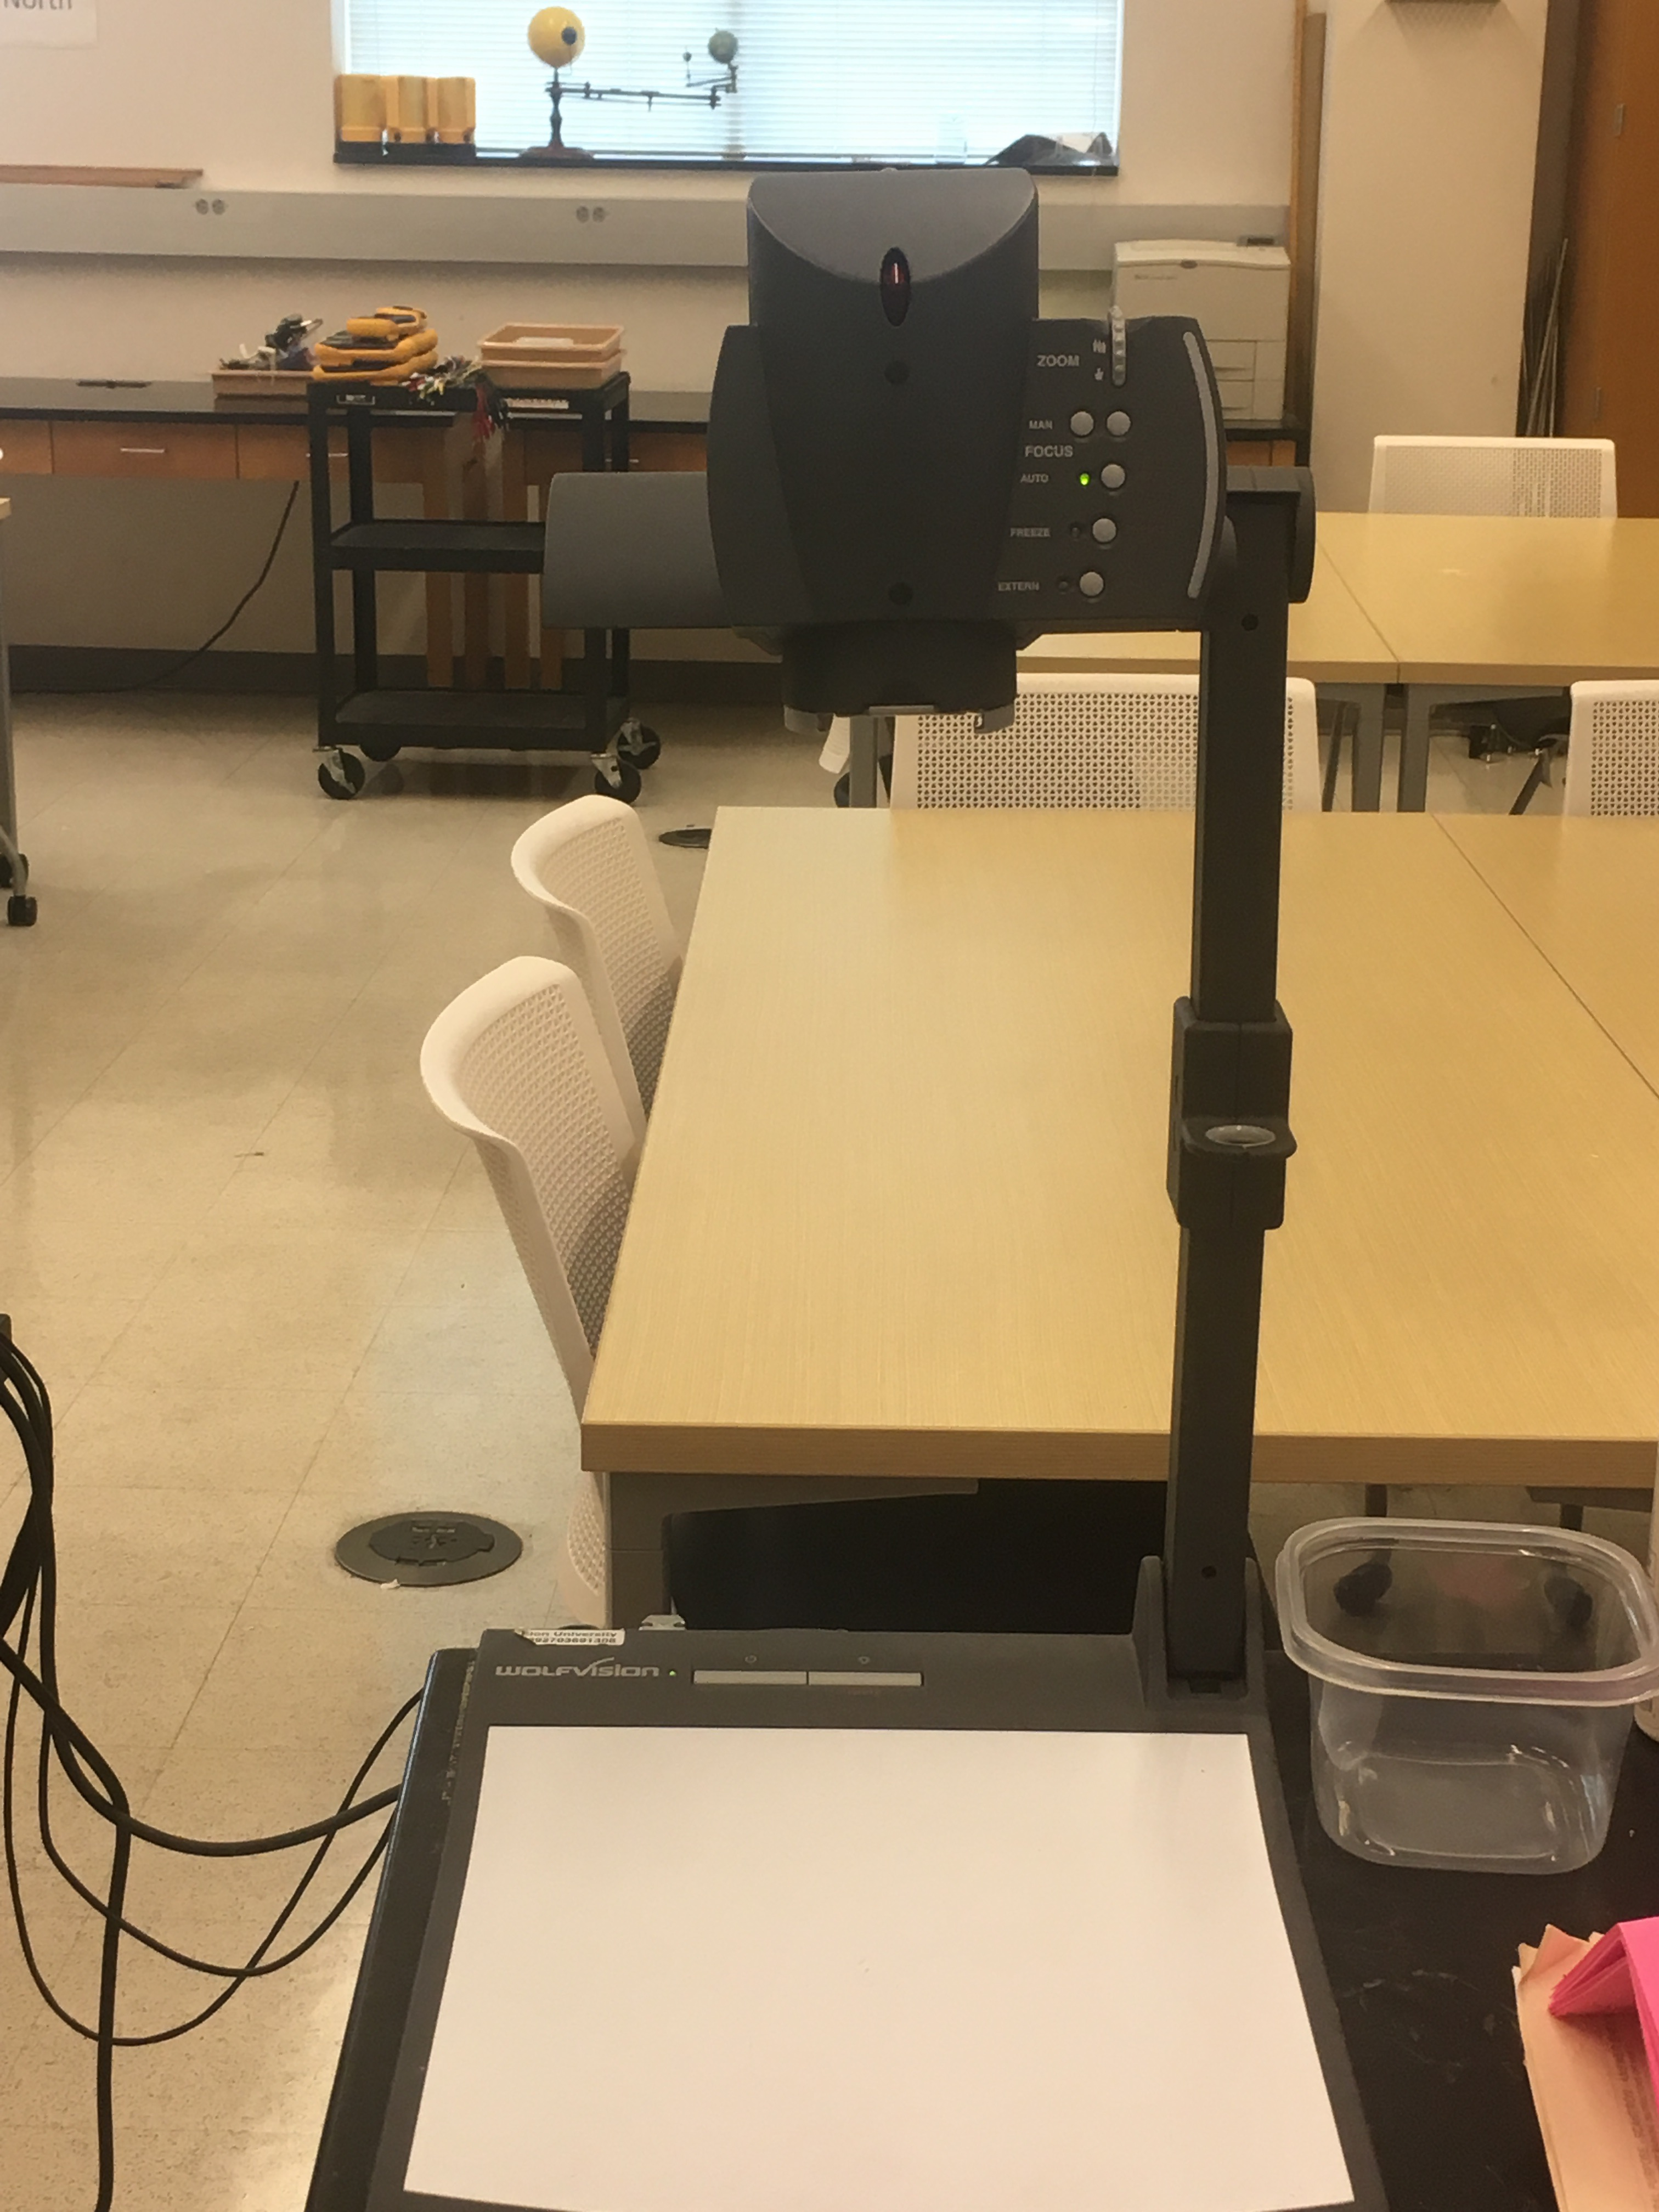 Photo of the document camera available in the space